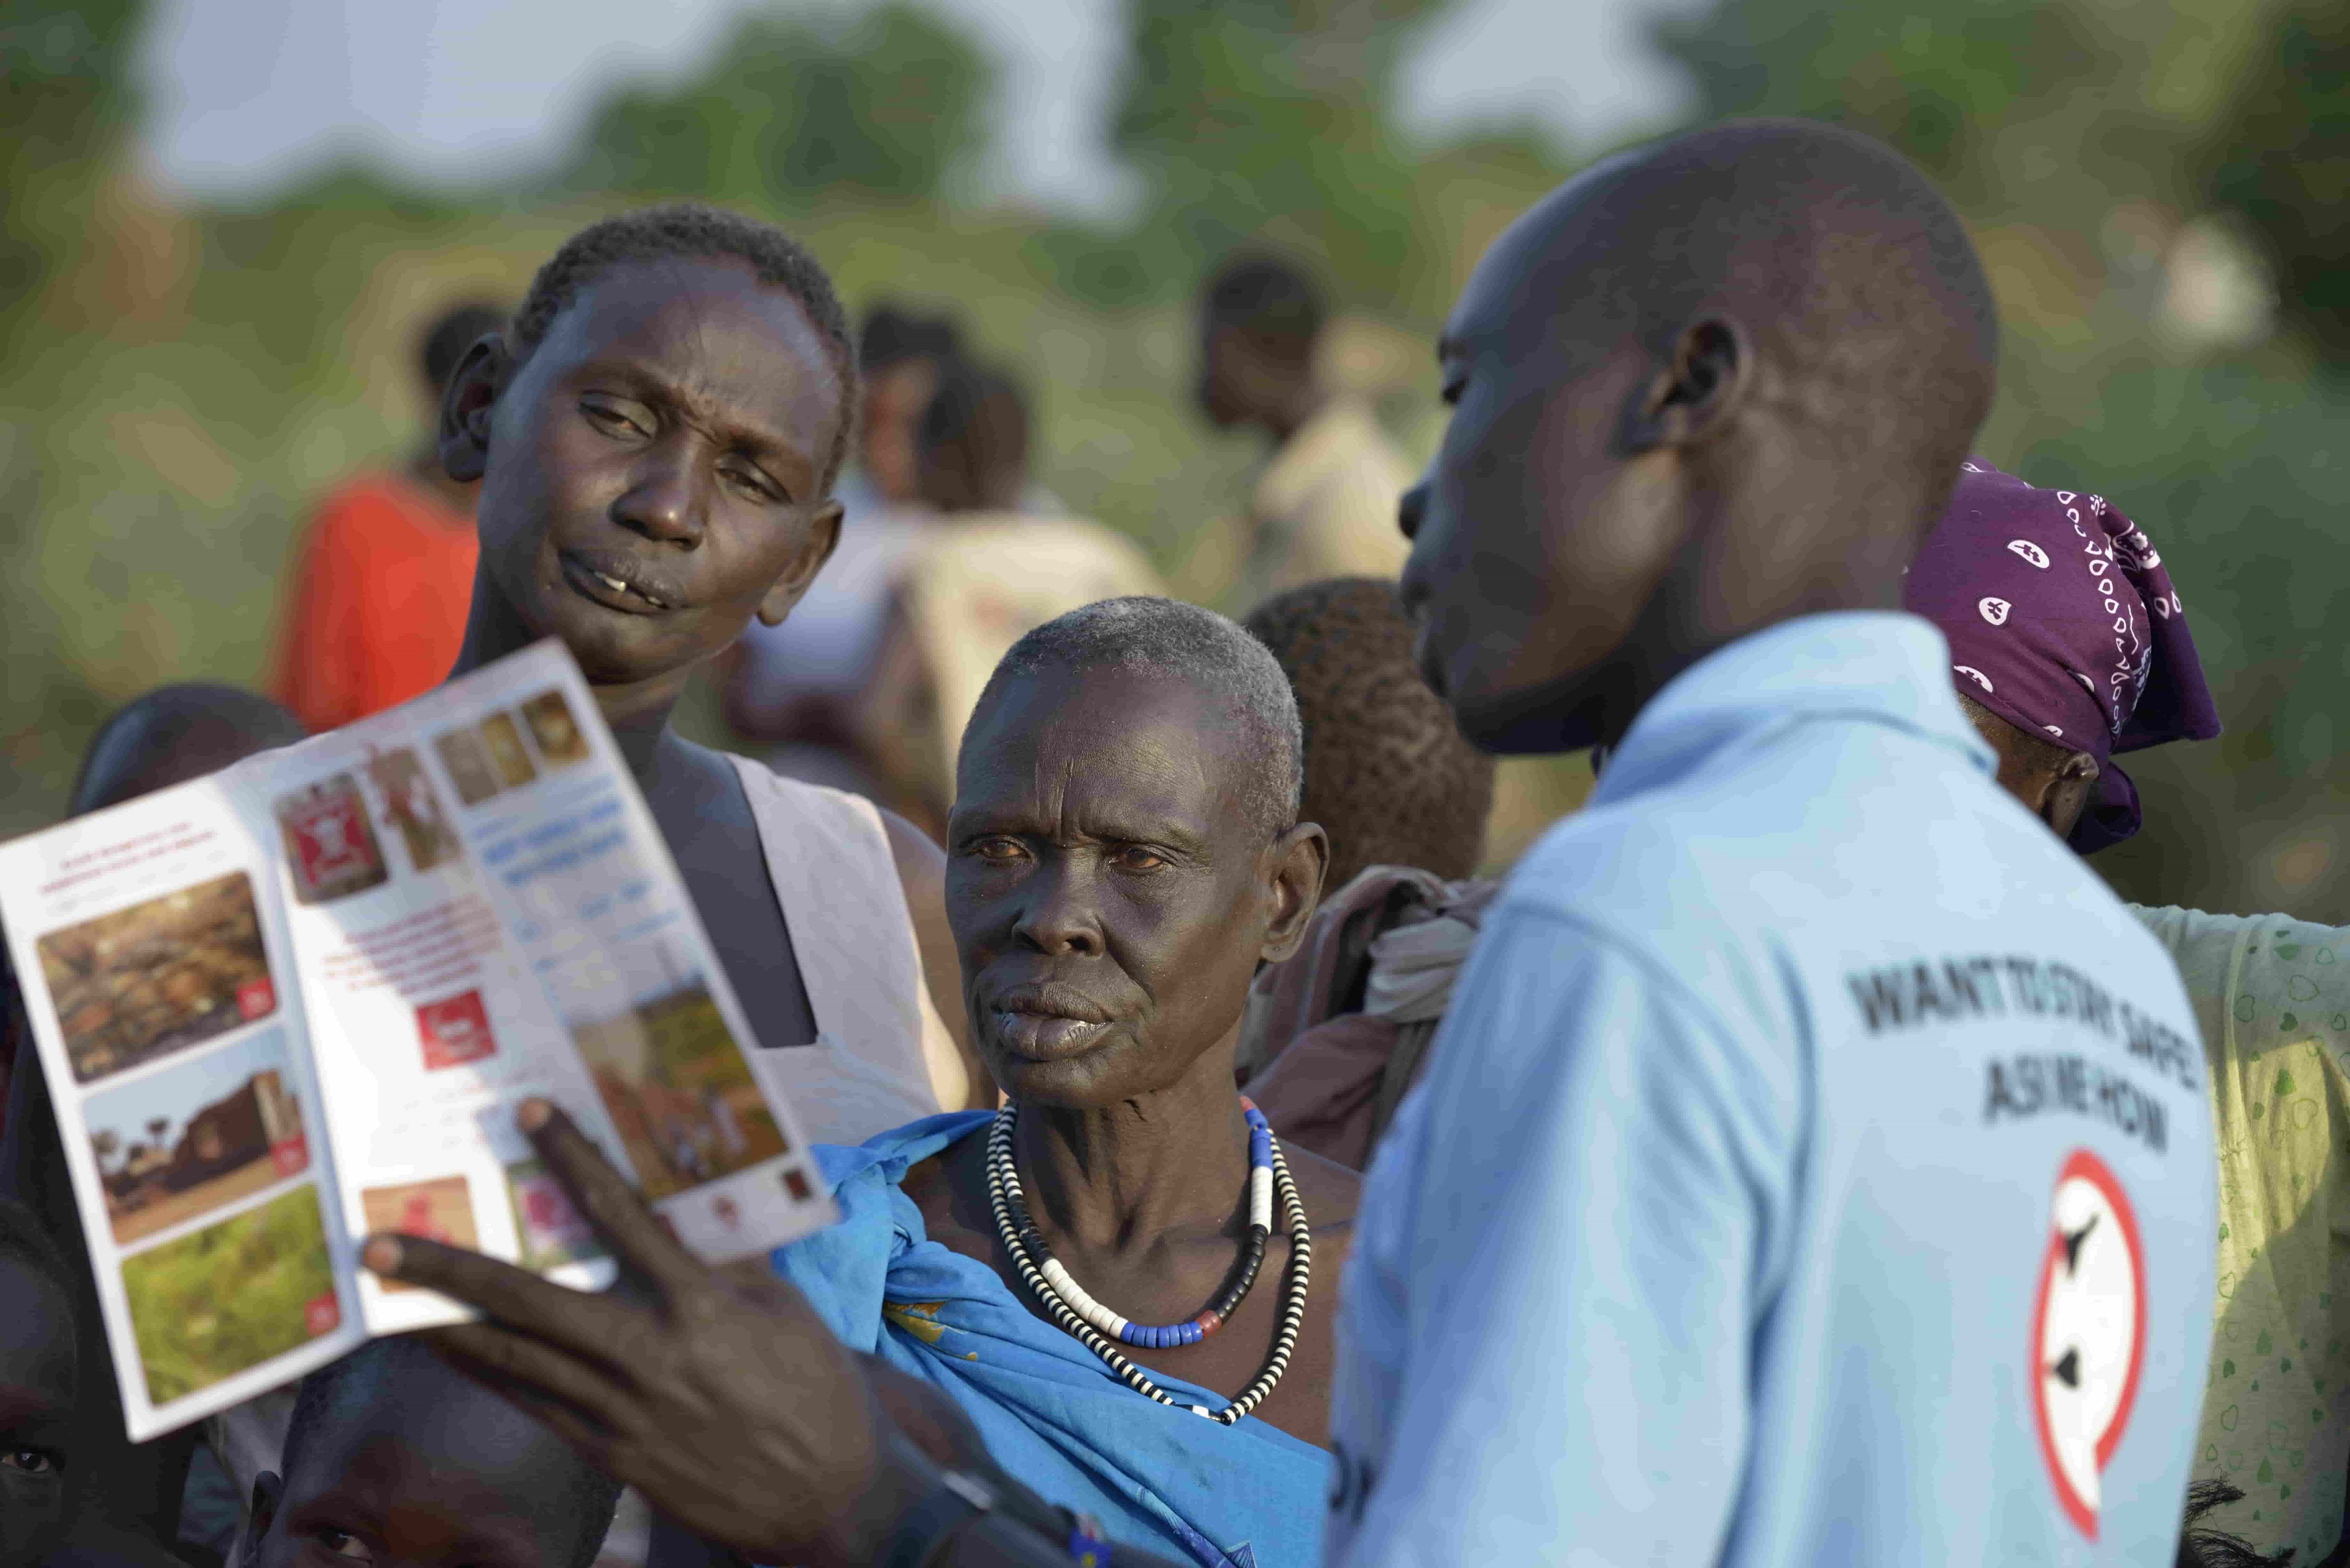 Protecting people in Southern Sudan from mine accidents through risk education.